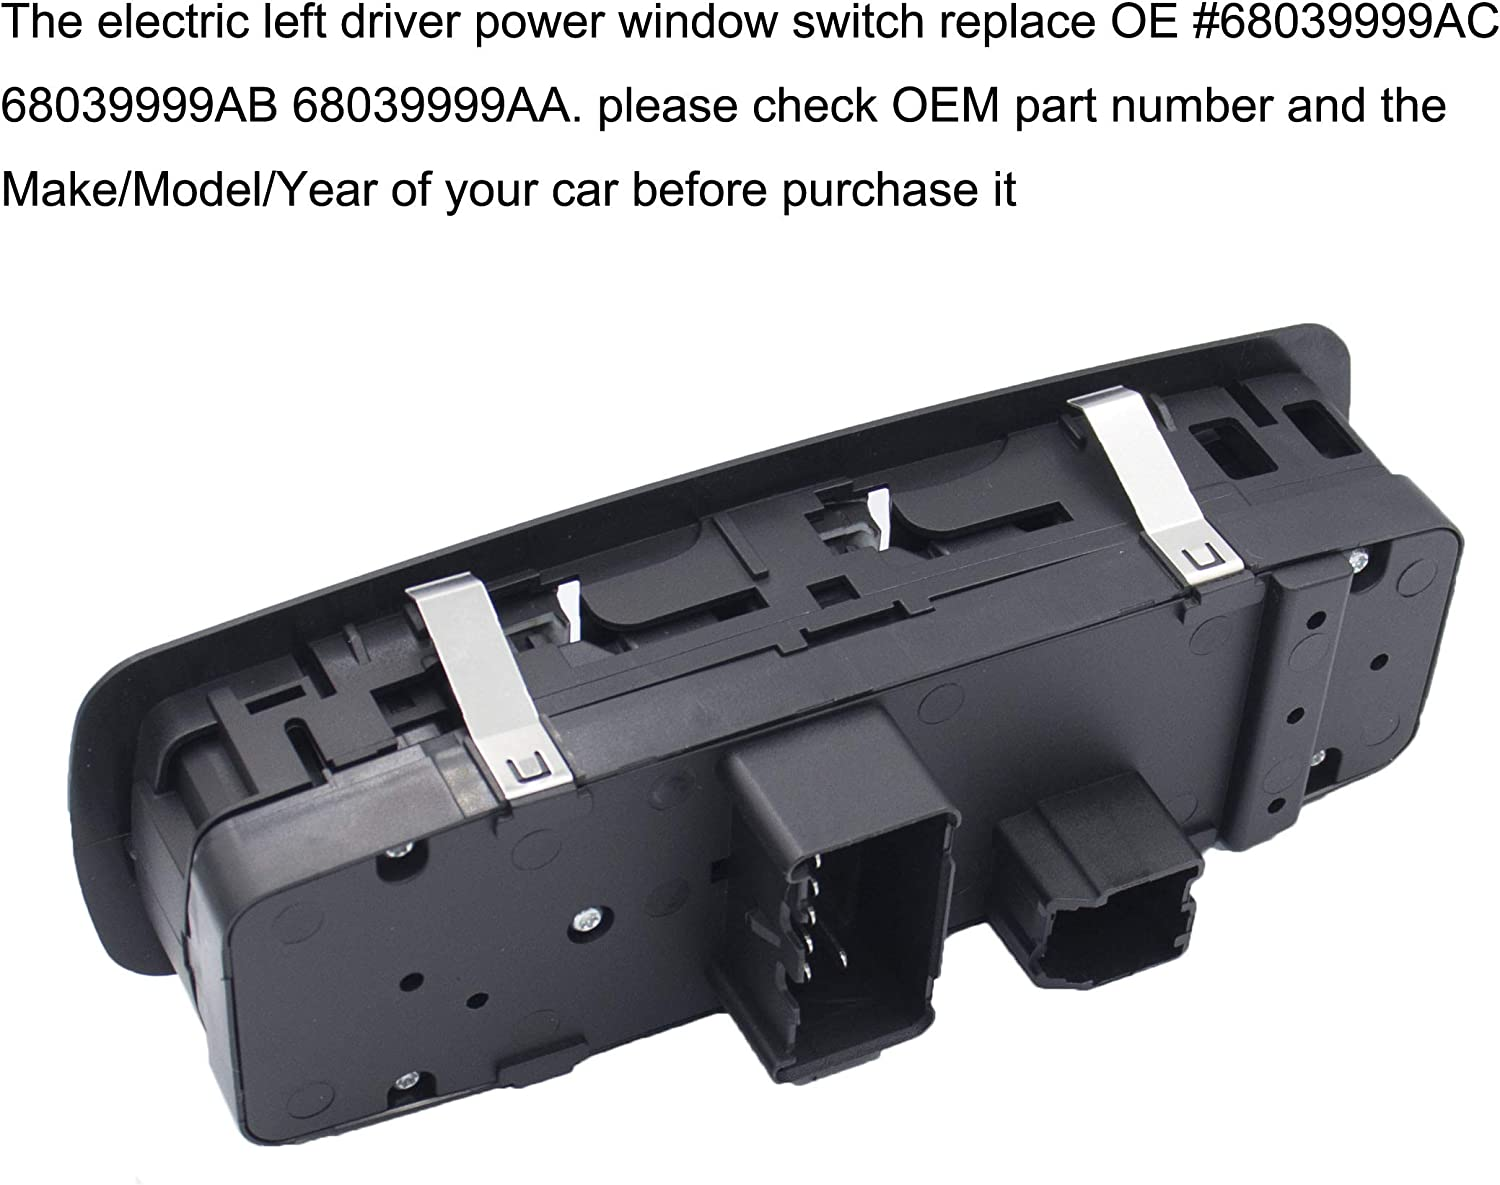 for Dodge Journey 2009-2014 3 PINS + 9 PINS 68039999AA 68039999AC Master Power Window Switch Left Driver Side Fit for Dodge Grand Caravan 2008-2010 for Chrysler Town /& Country 2008-2009